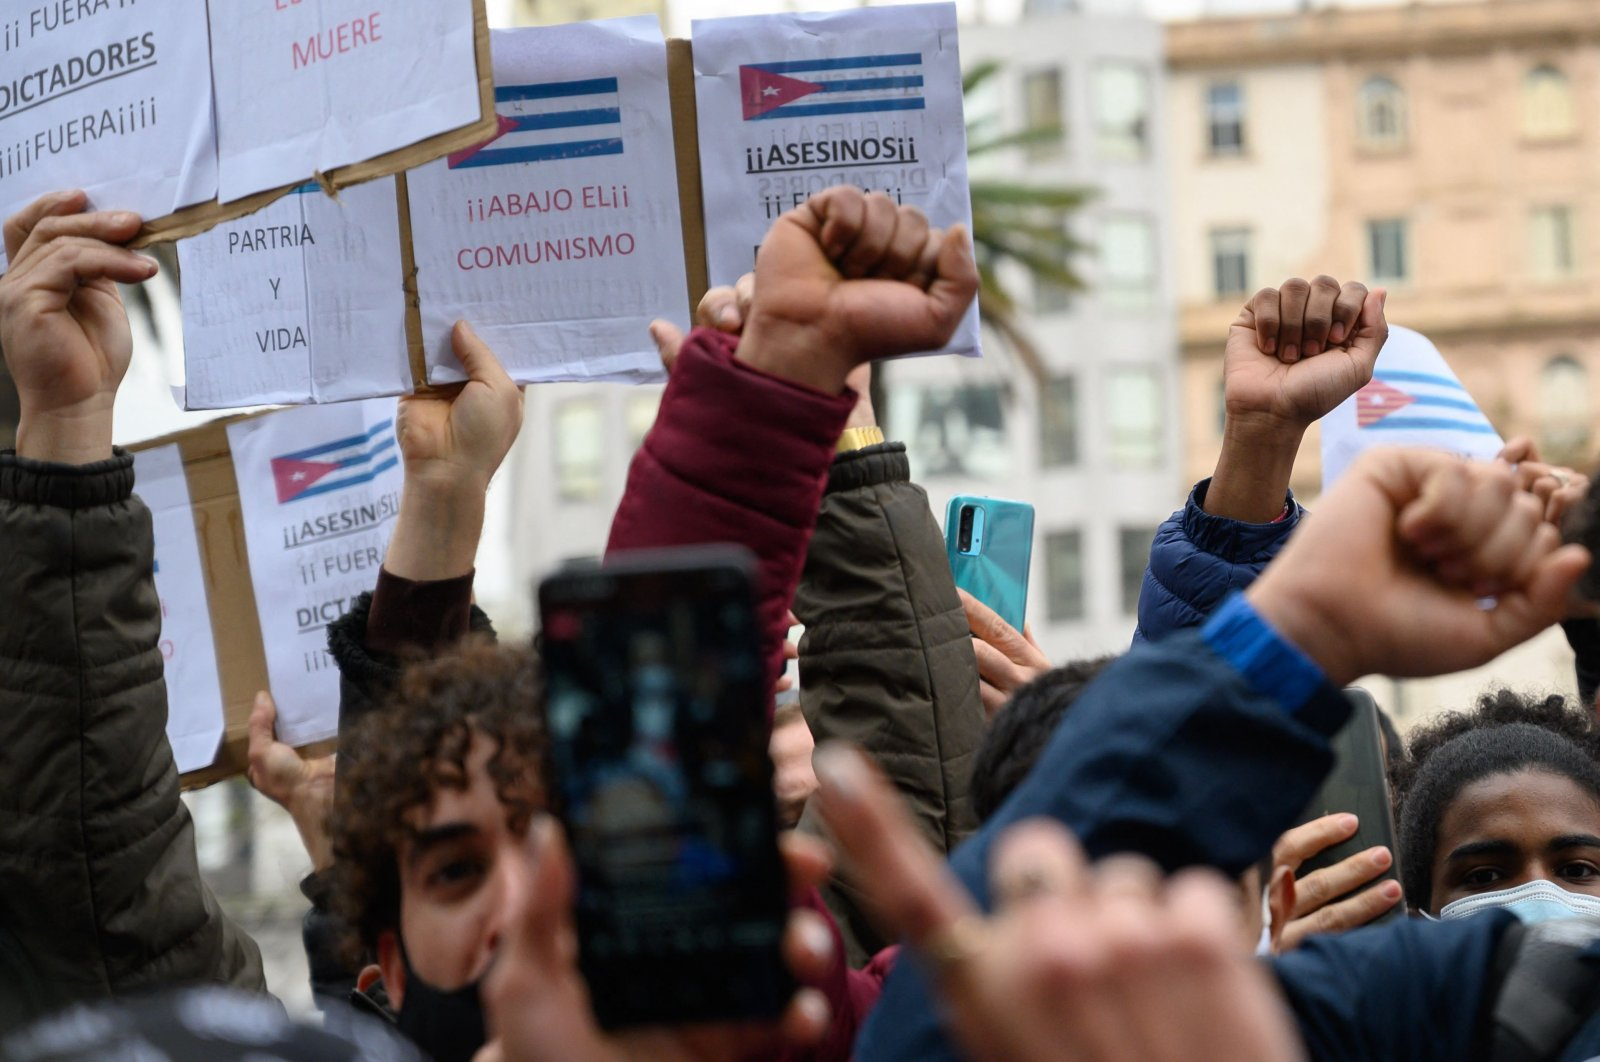 Cuban residents in Uruguay demonstrate against the Cuban government of President Miguel Diaz-Canel at Independence Square in Montevideo, July 13, 2021. (AFP Photo)